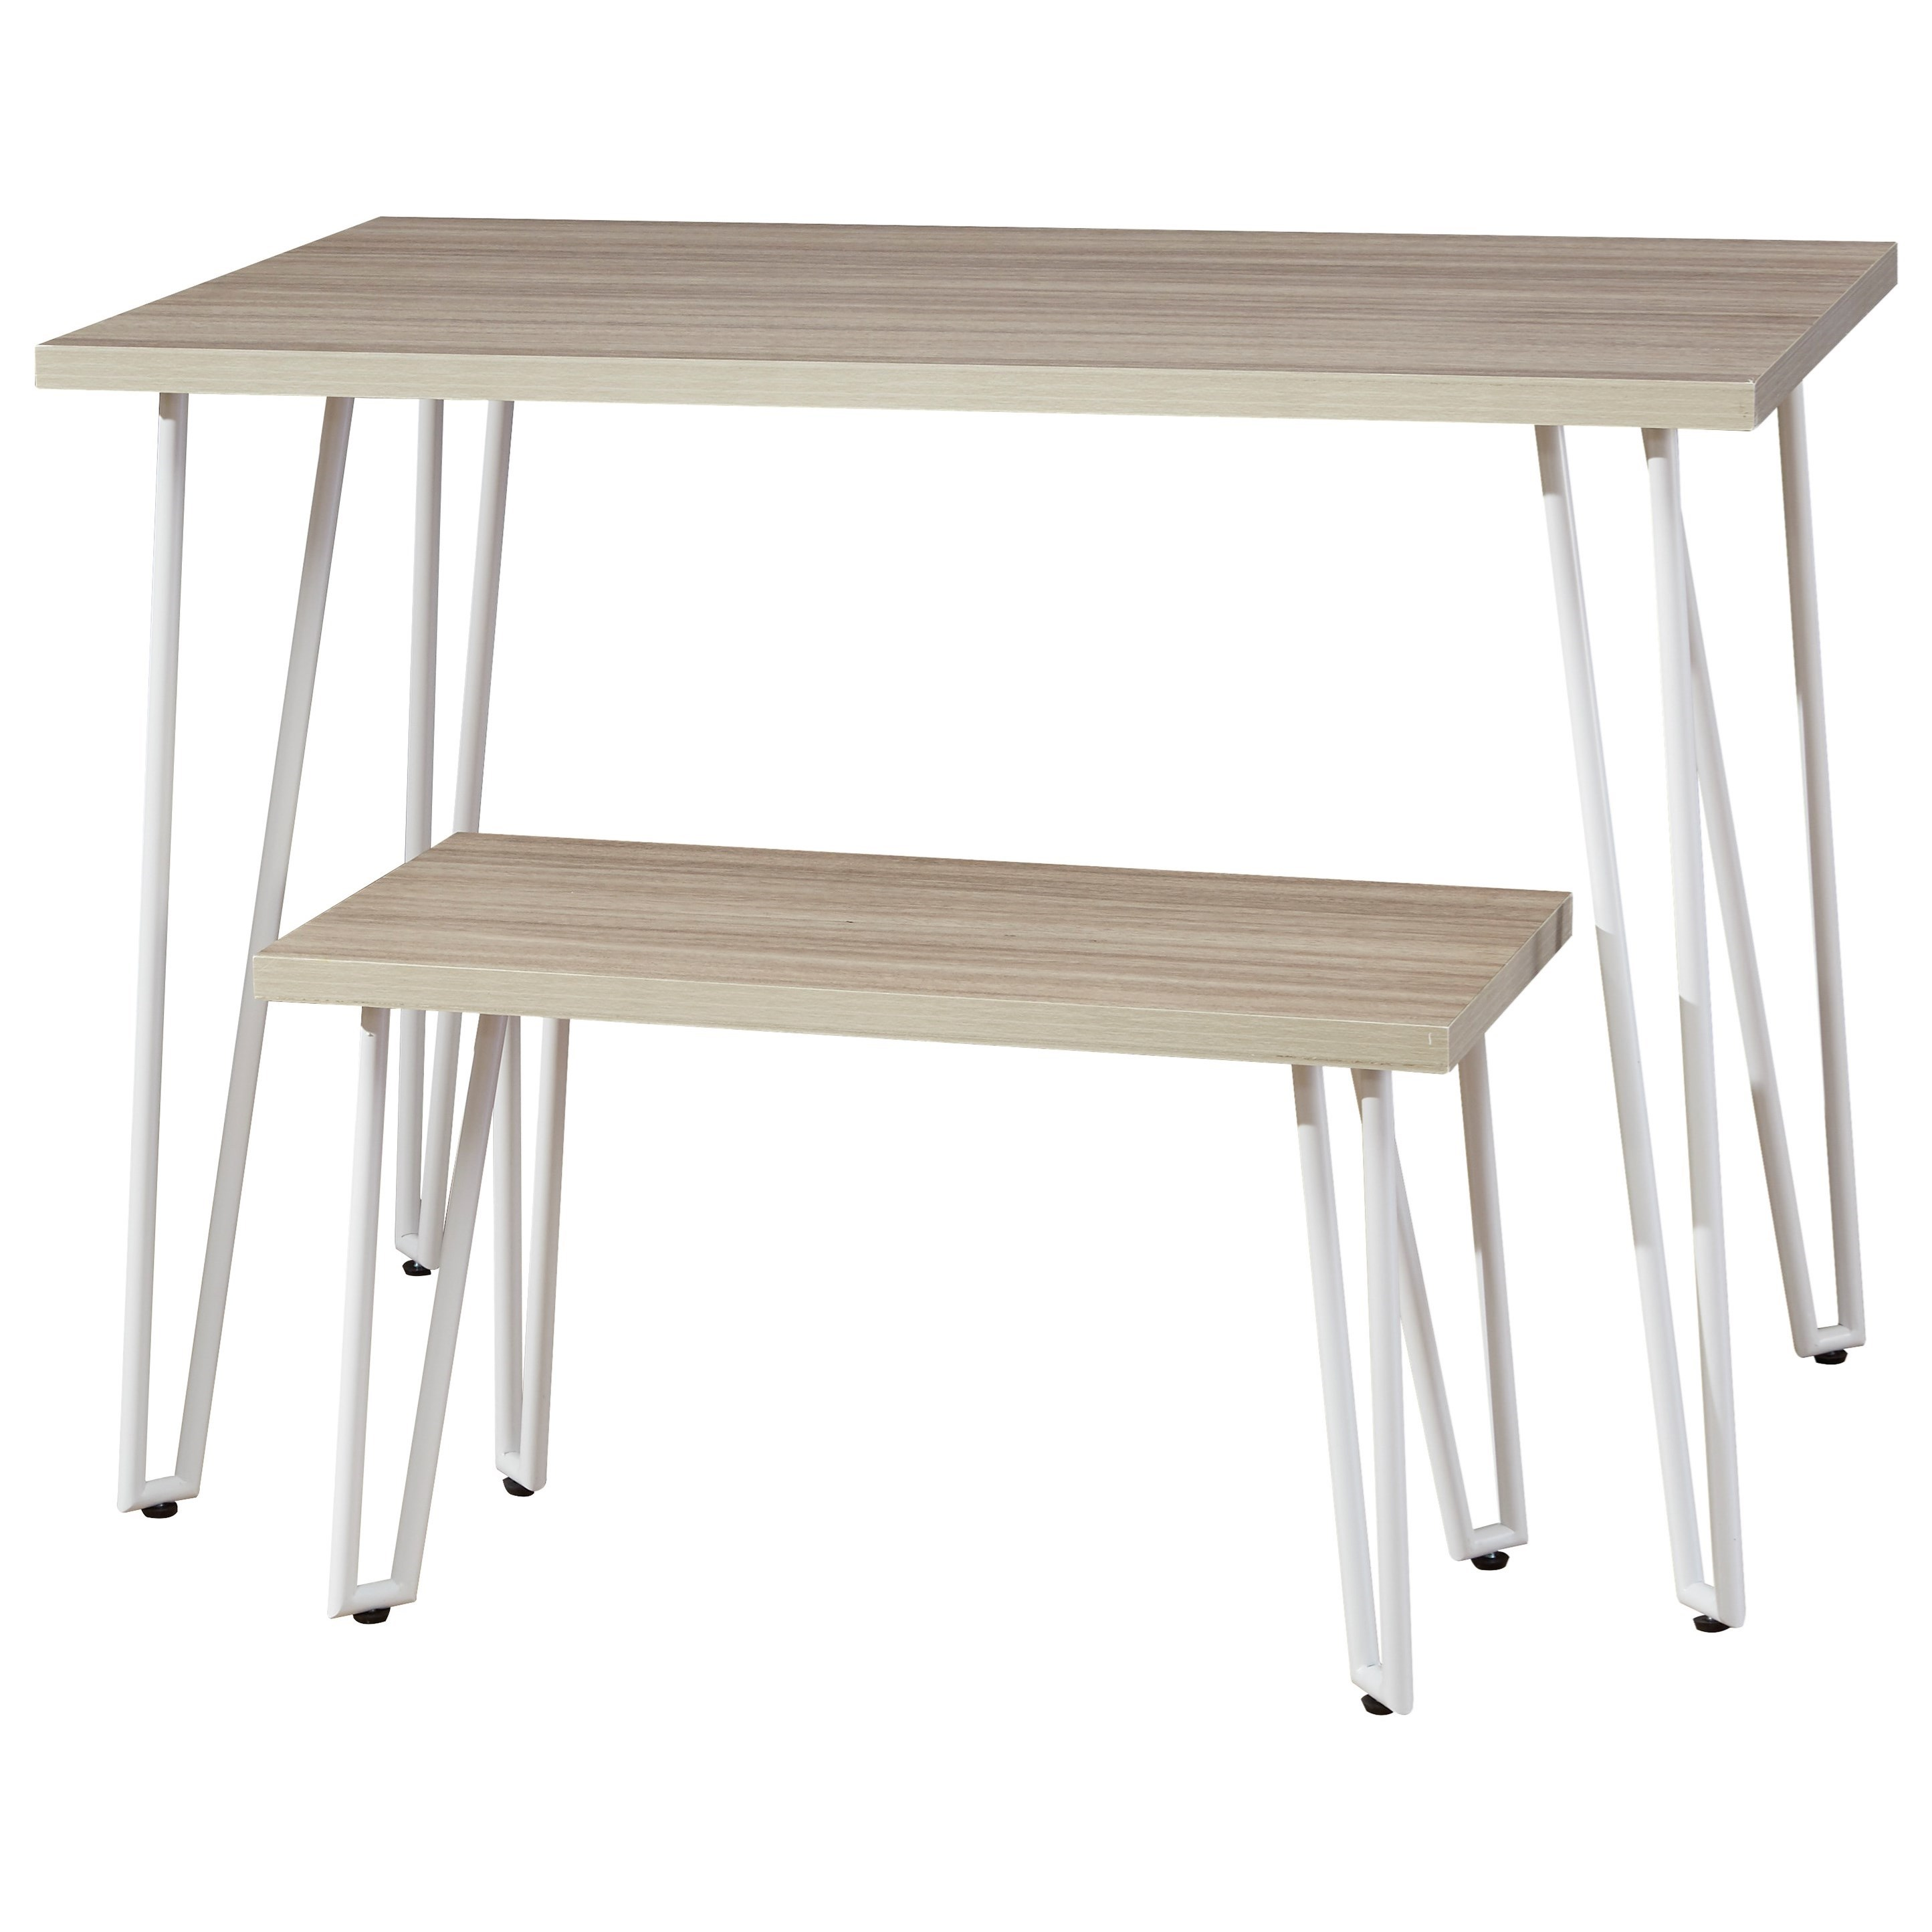 Blariden Desk w/ Bench by Signature Design by Ashley at Northeast Factory Direct